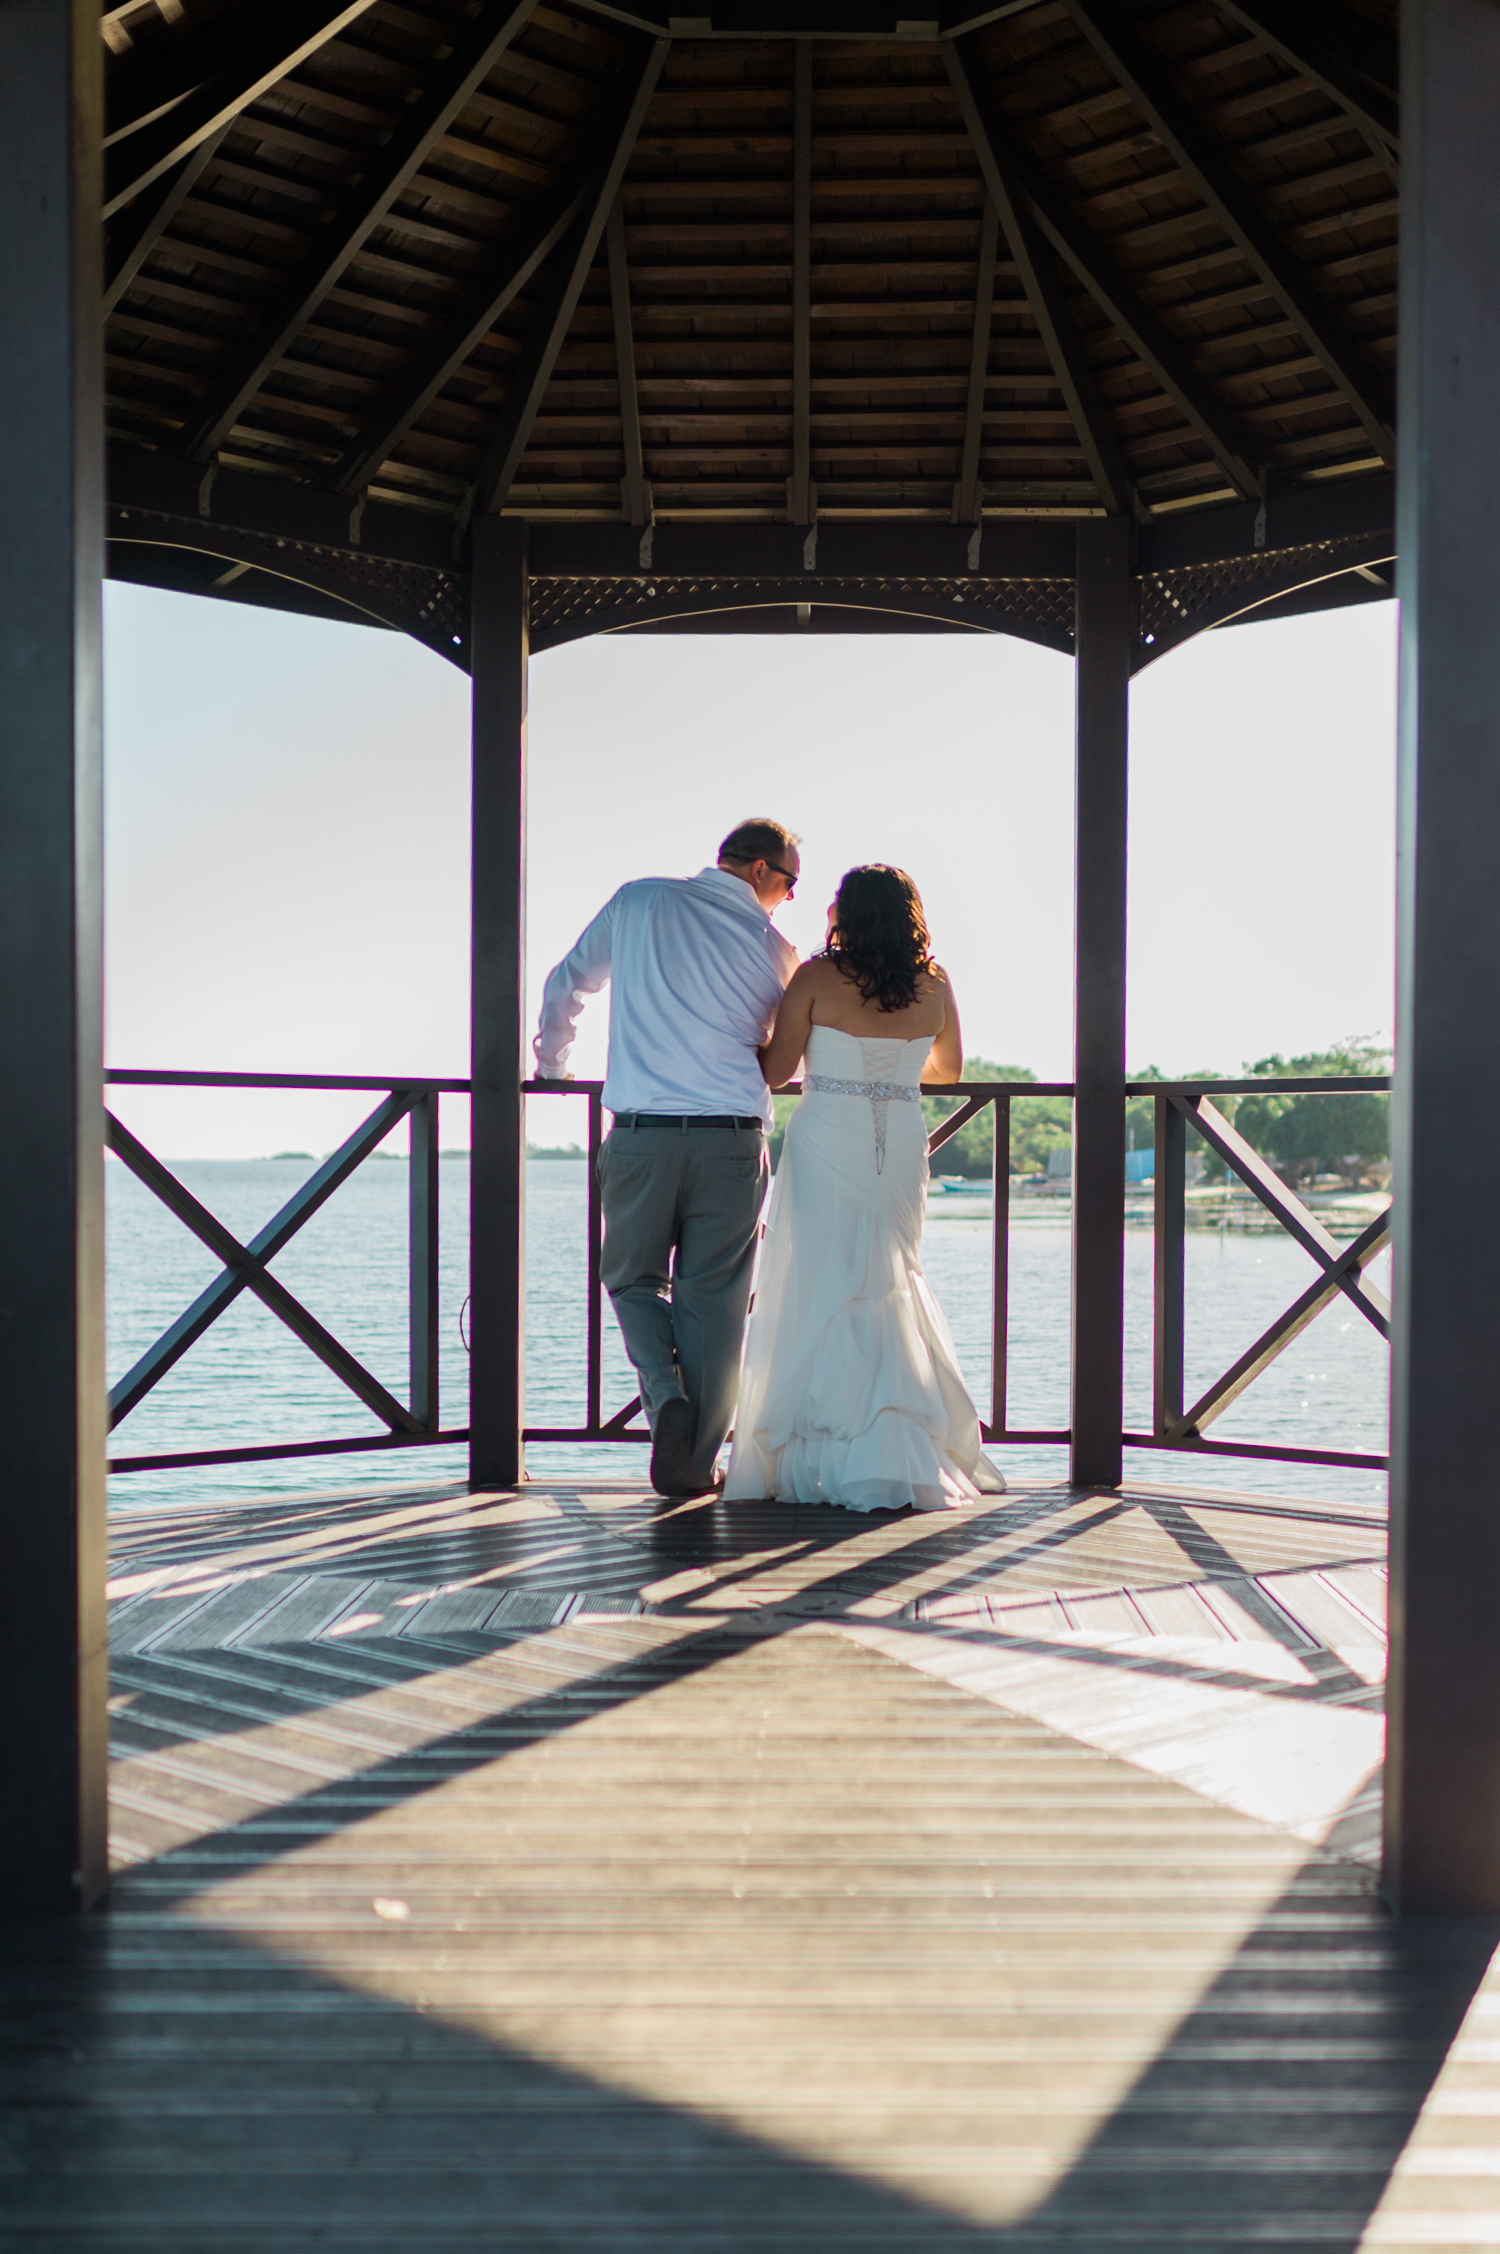 JadeandRyan-Montego-Bay-Jamaica-Wedding-Iberostar-Resort-Beach-83.jpg